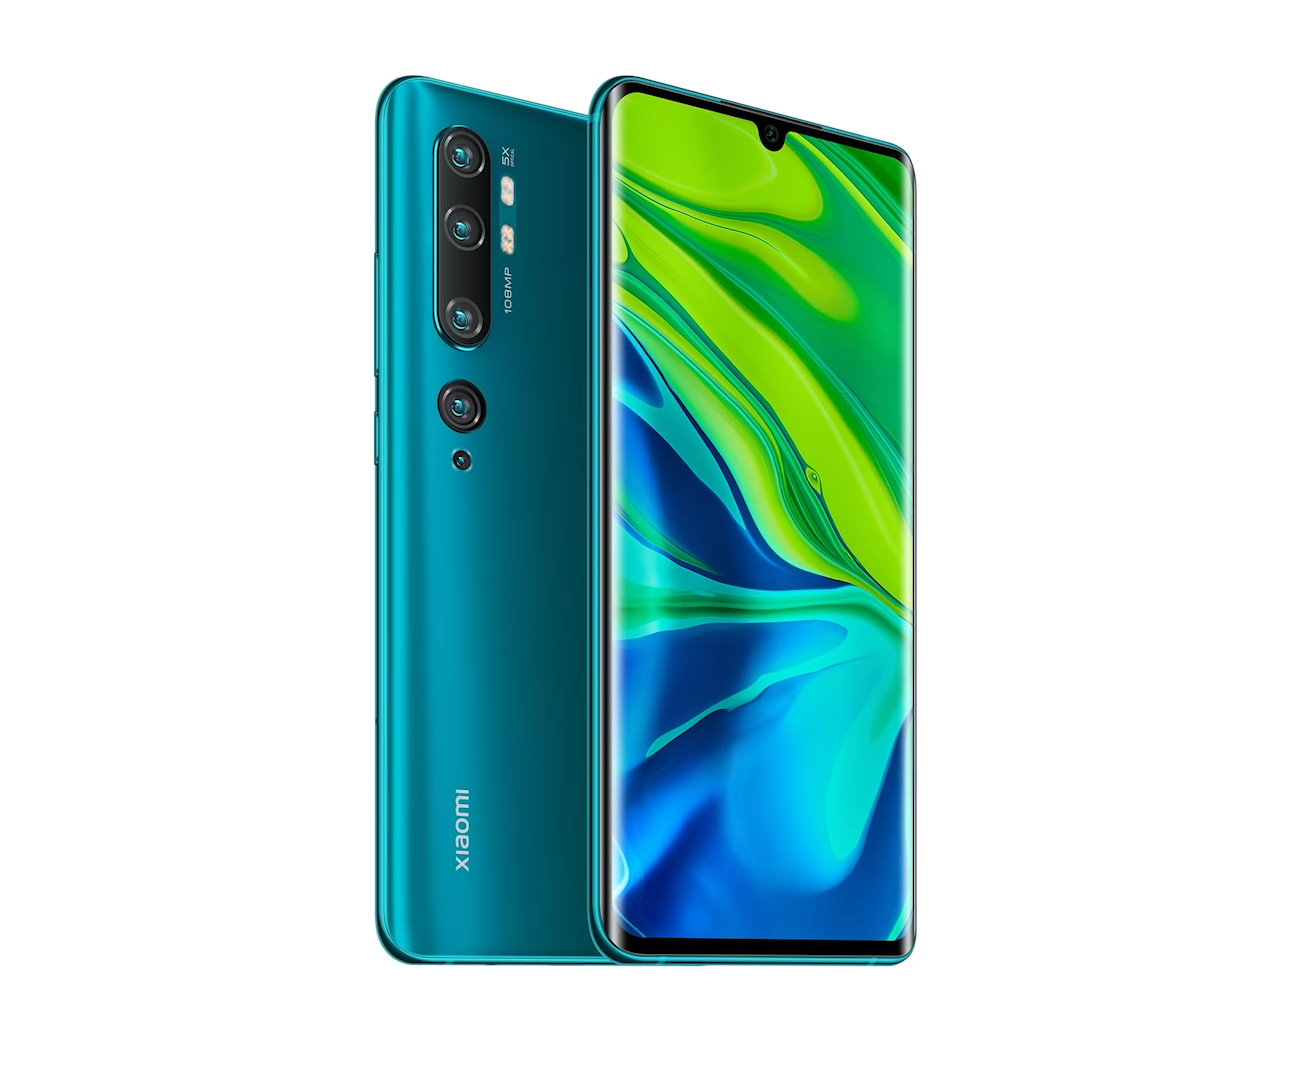 xiaomi mi note 10 cc9 - Xiaomi CC9 Pro (Mi Note 10) officialized in China: design and features of the smartphone 108 MP - FrAndroid